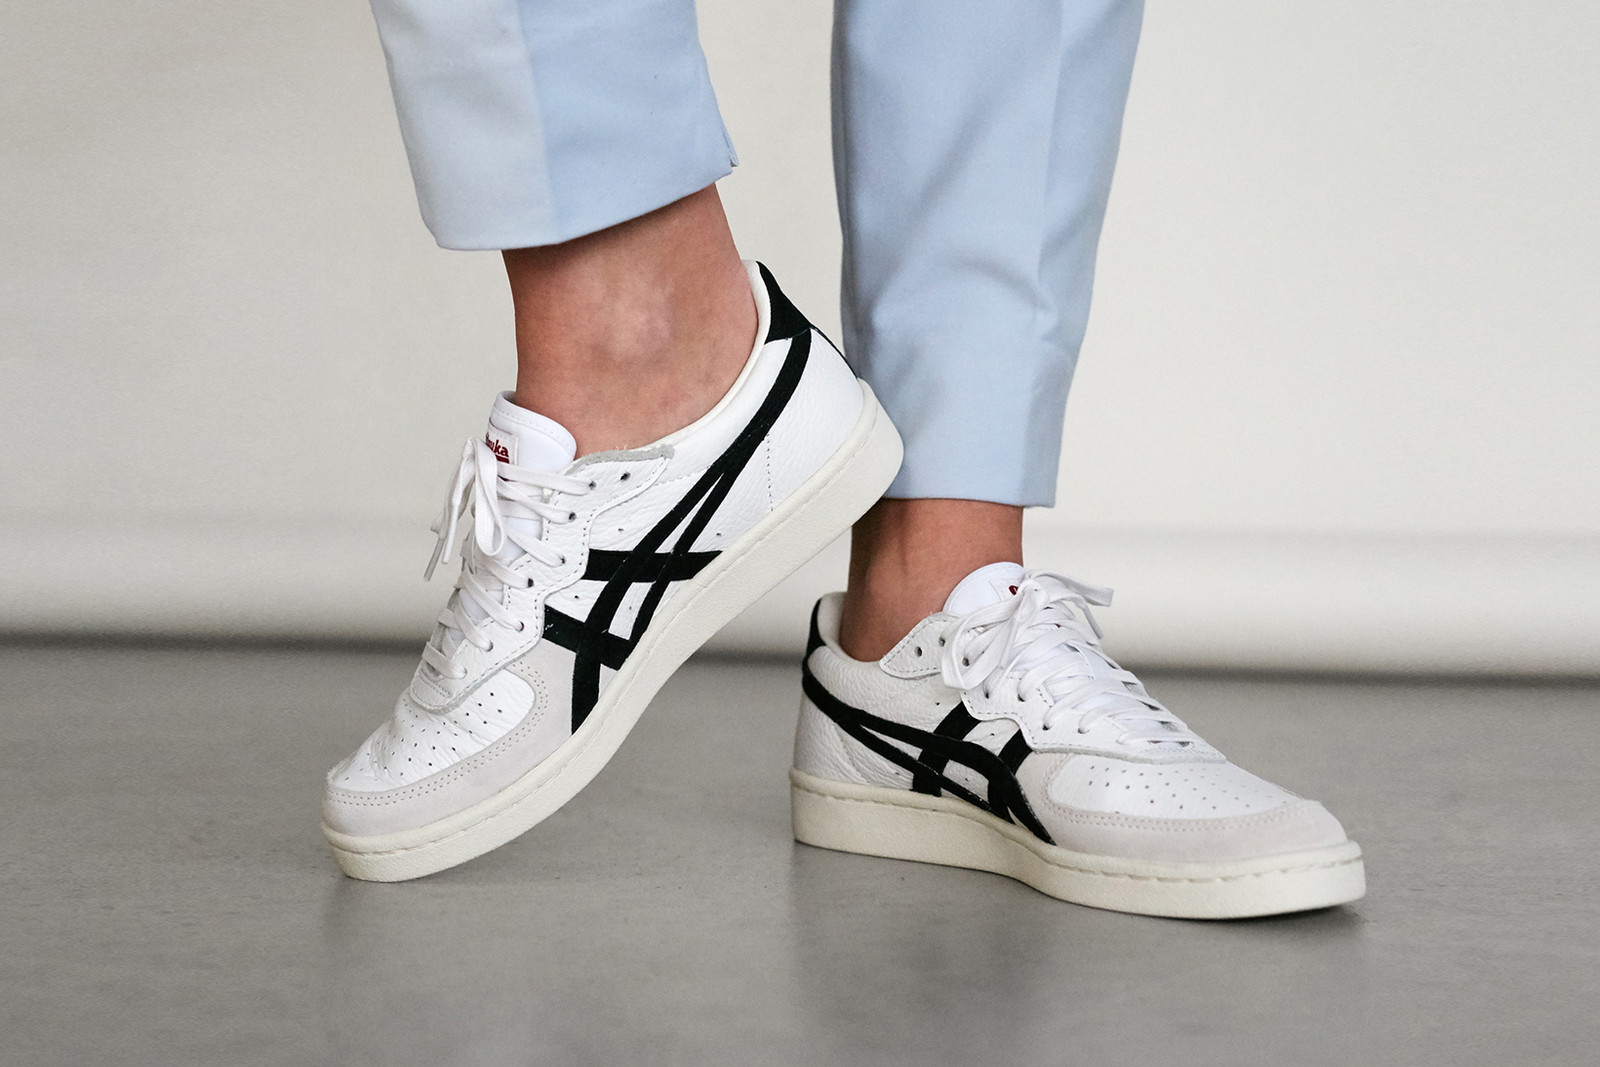 best service 7df69 a11e1 NAKED x Onitsuka Tiger GSM Collaboration | HYPEBAE